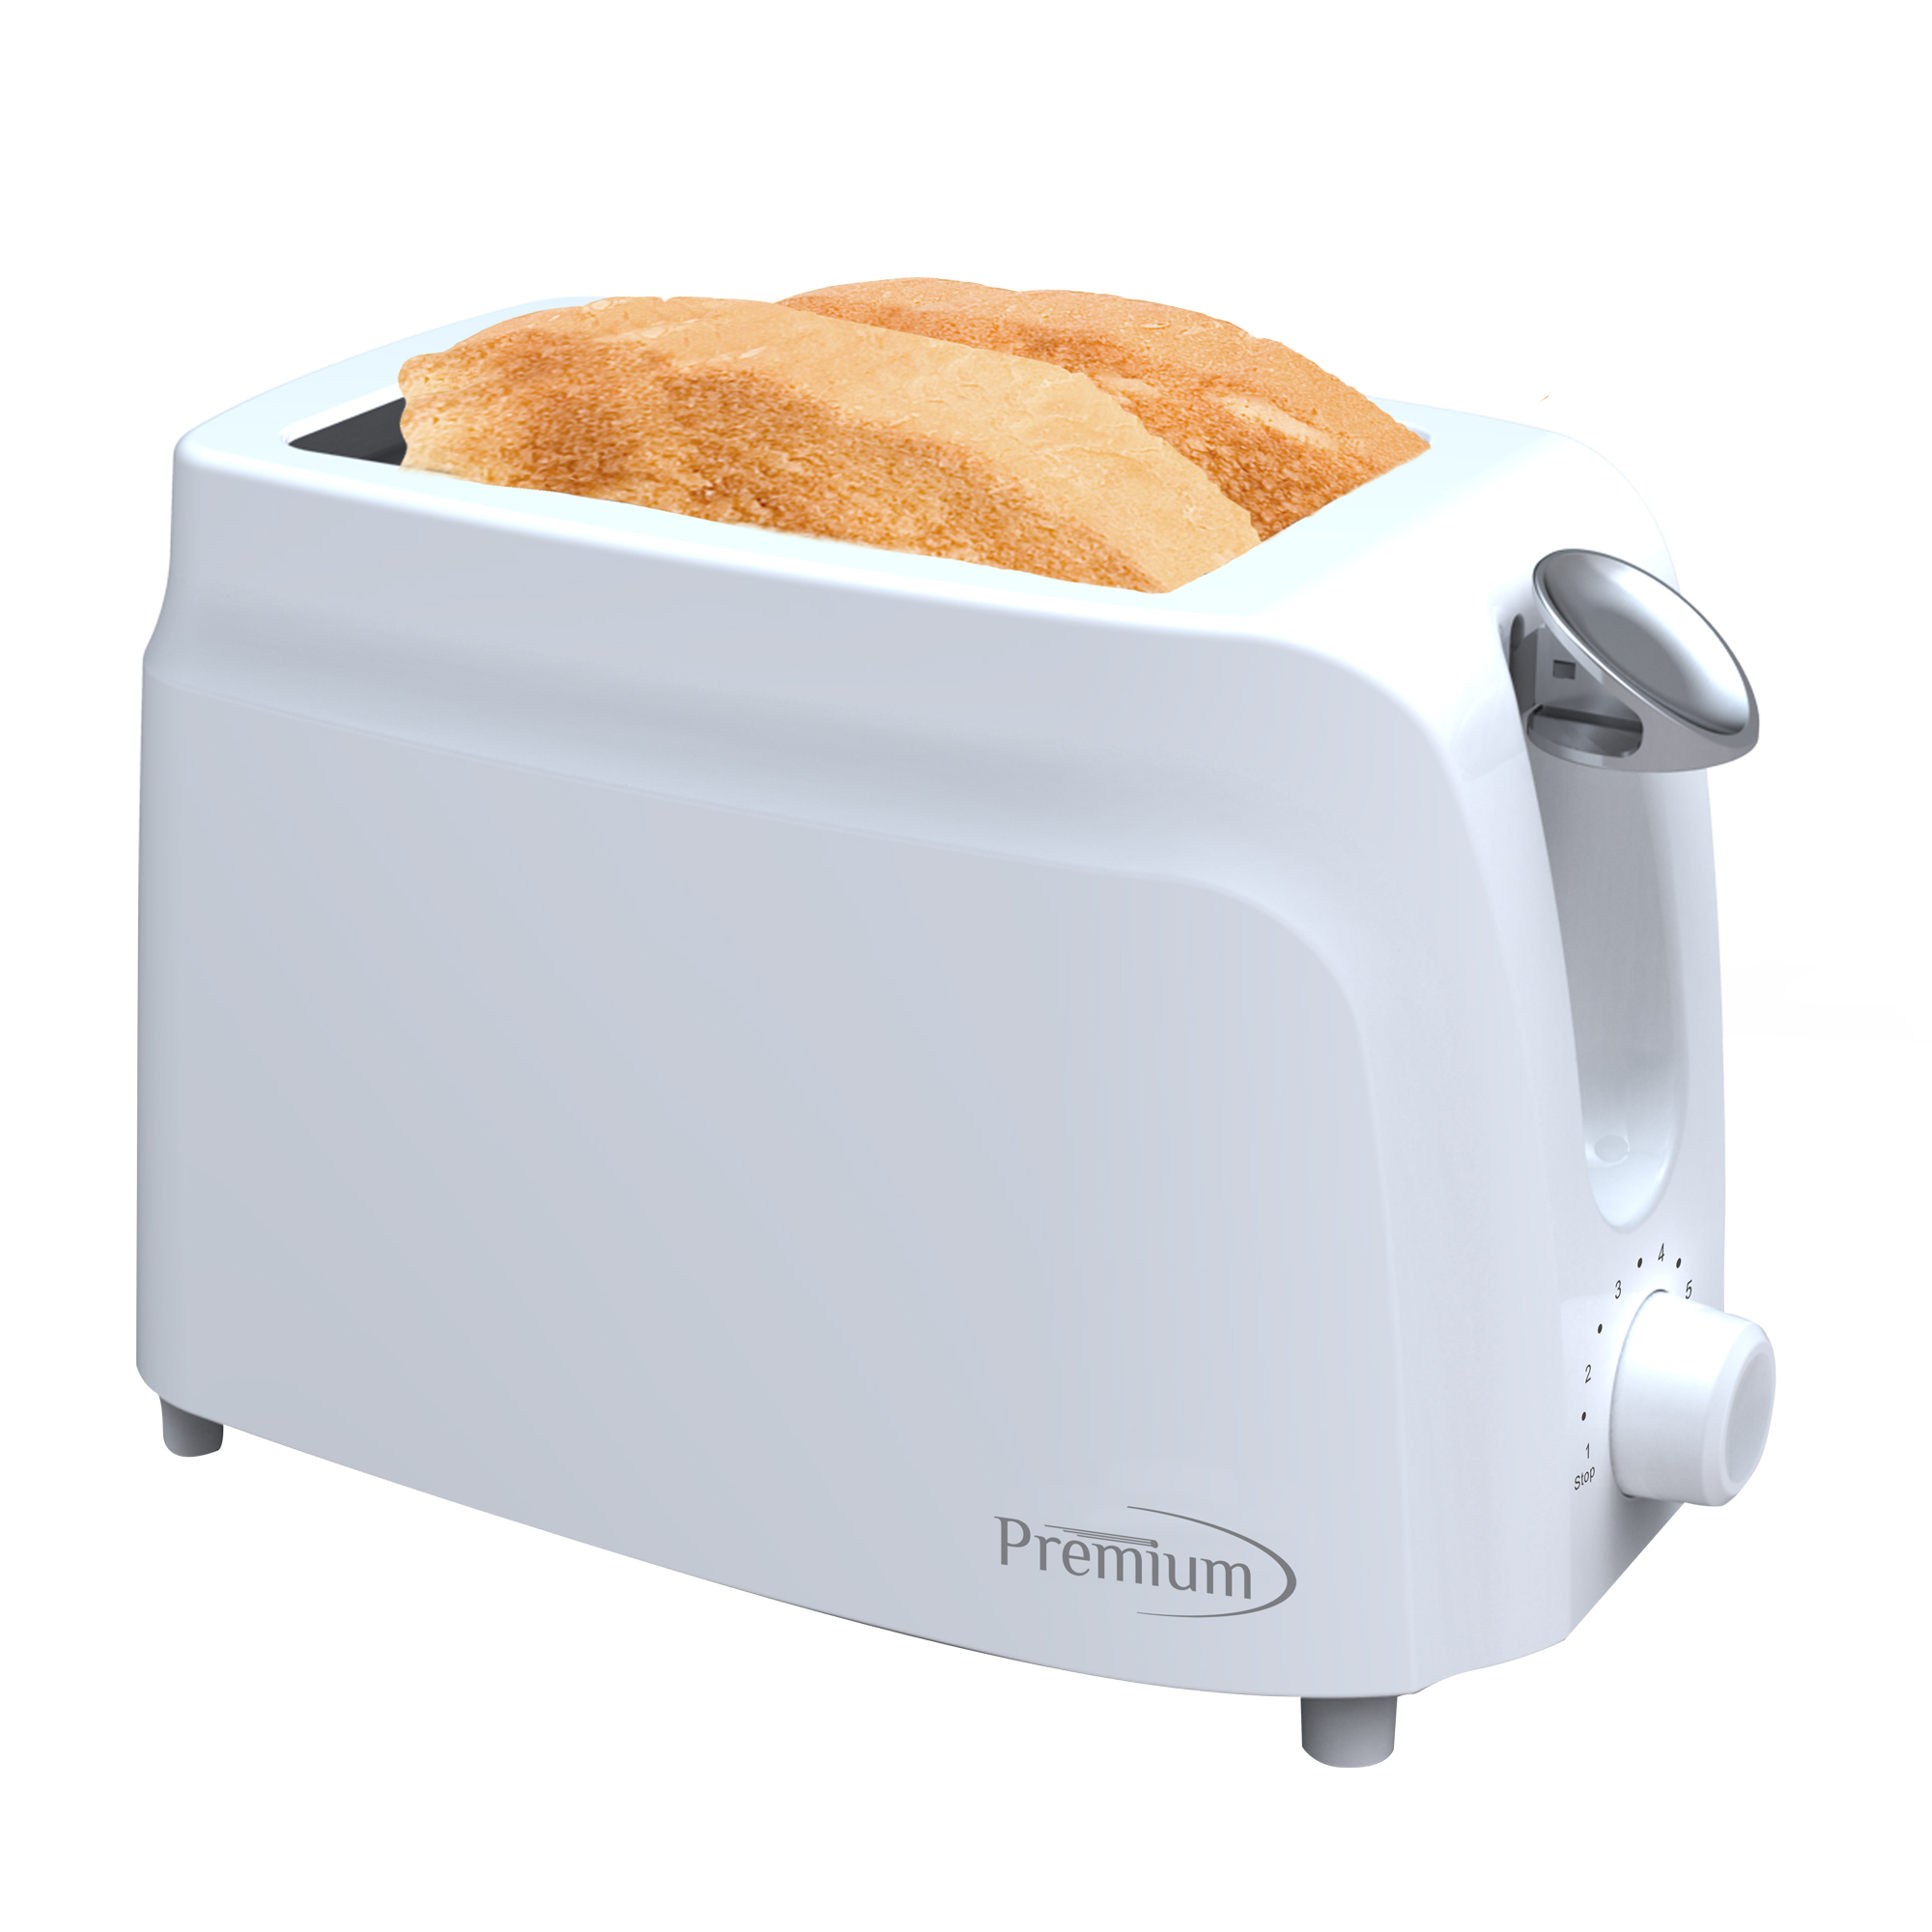 Premium Appliances 2 Slice Toaster